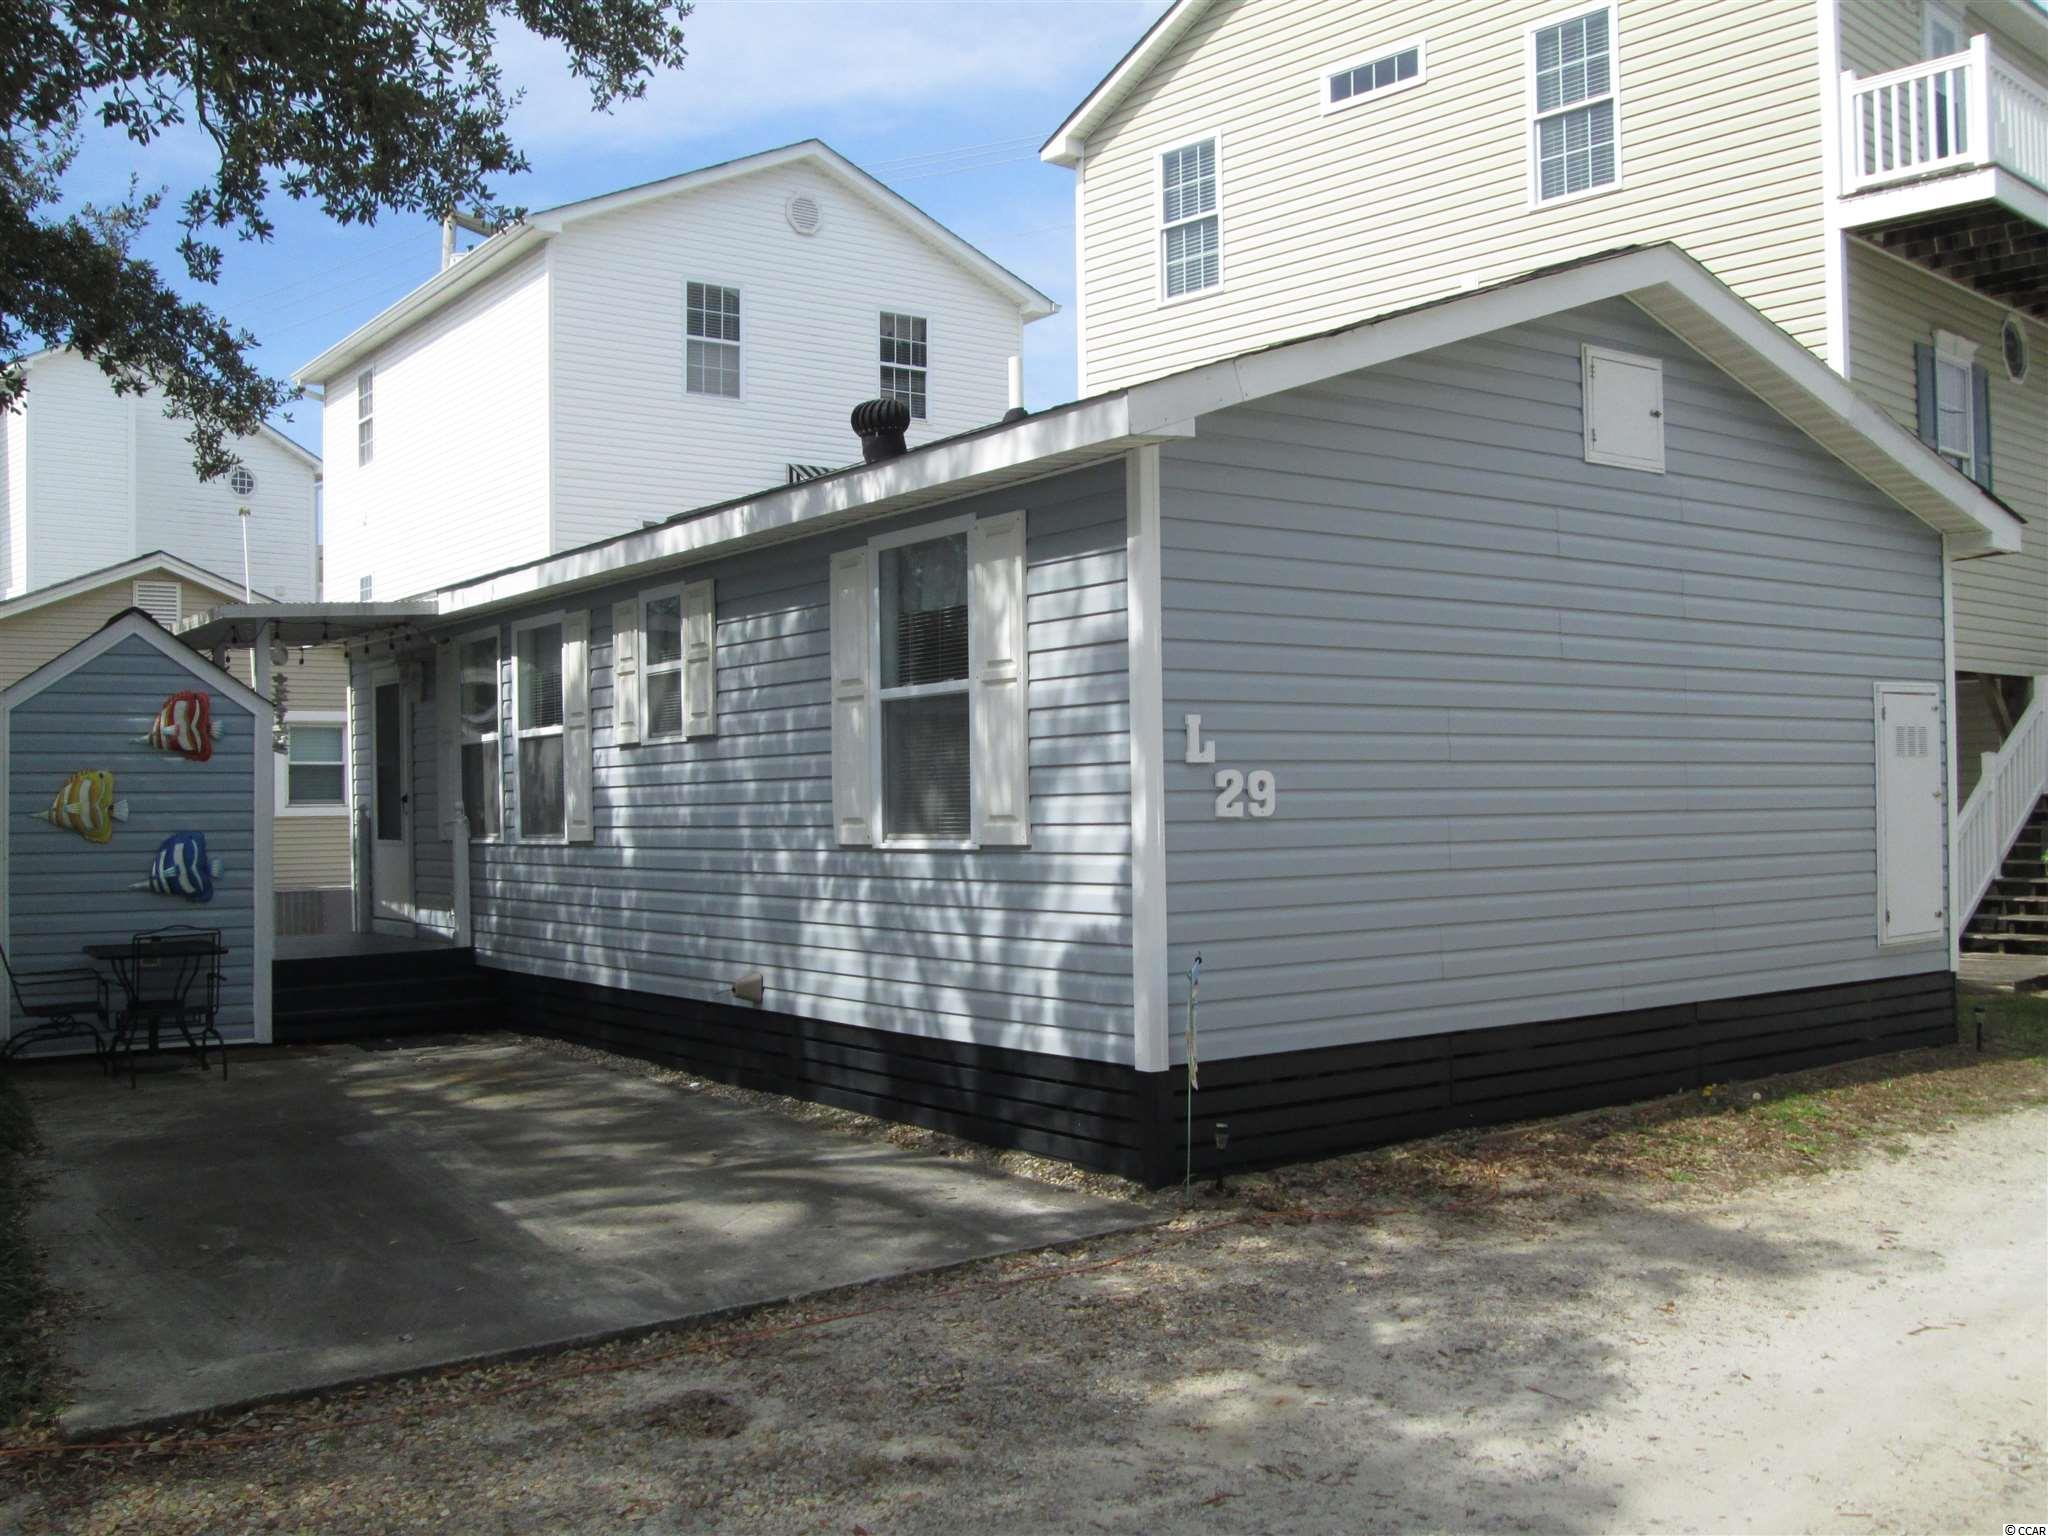 This Home is situated on a permanent site located off of a paved road. All sites are close to the beach and most of amenities that Ocean Lakes has to offer come with the purchase. Ocean Lakes has nearly a mile of beach front. 24 hour security and amenities such as indoor and outdoor pools, water park with a splash zone, golf cart rental, sales and service, lazy river, slides, basketball courts, volleyball and much more when you become part of the Ocean Lakes Family